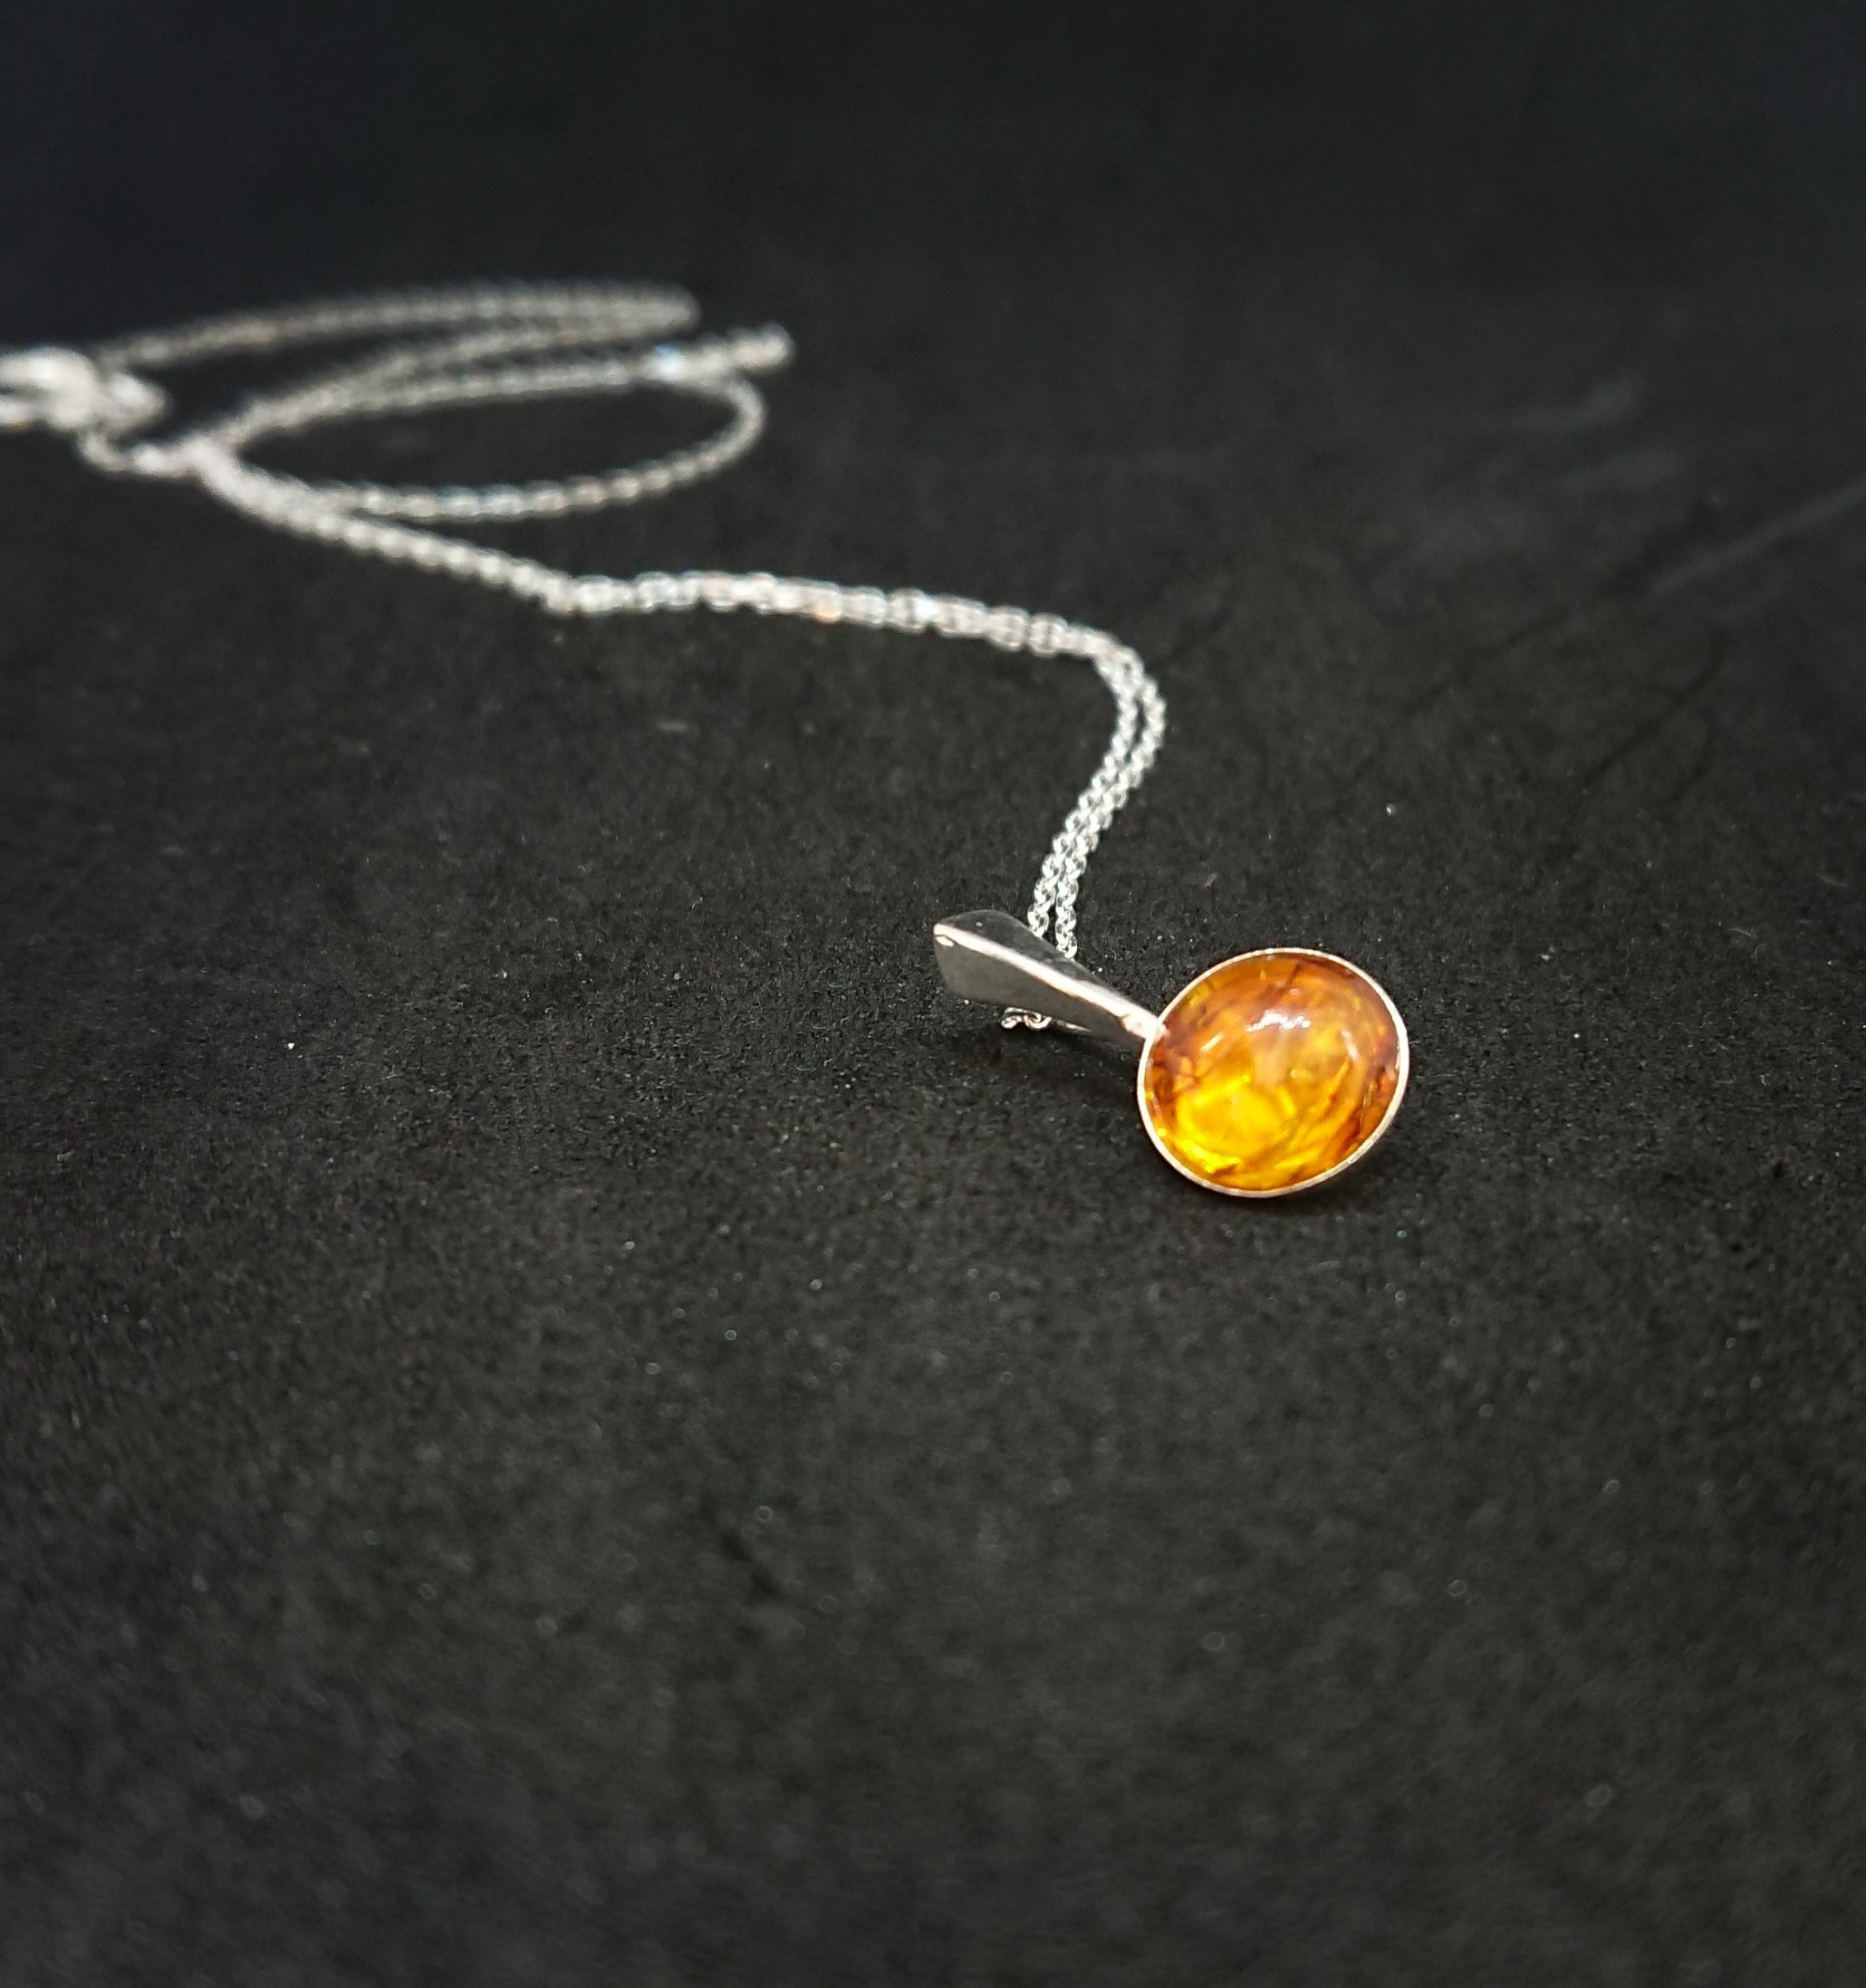 Baltic amber sterling silver pendant necklace